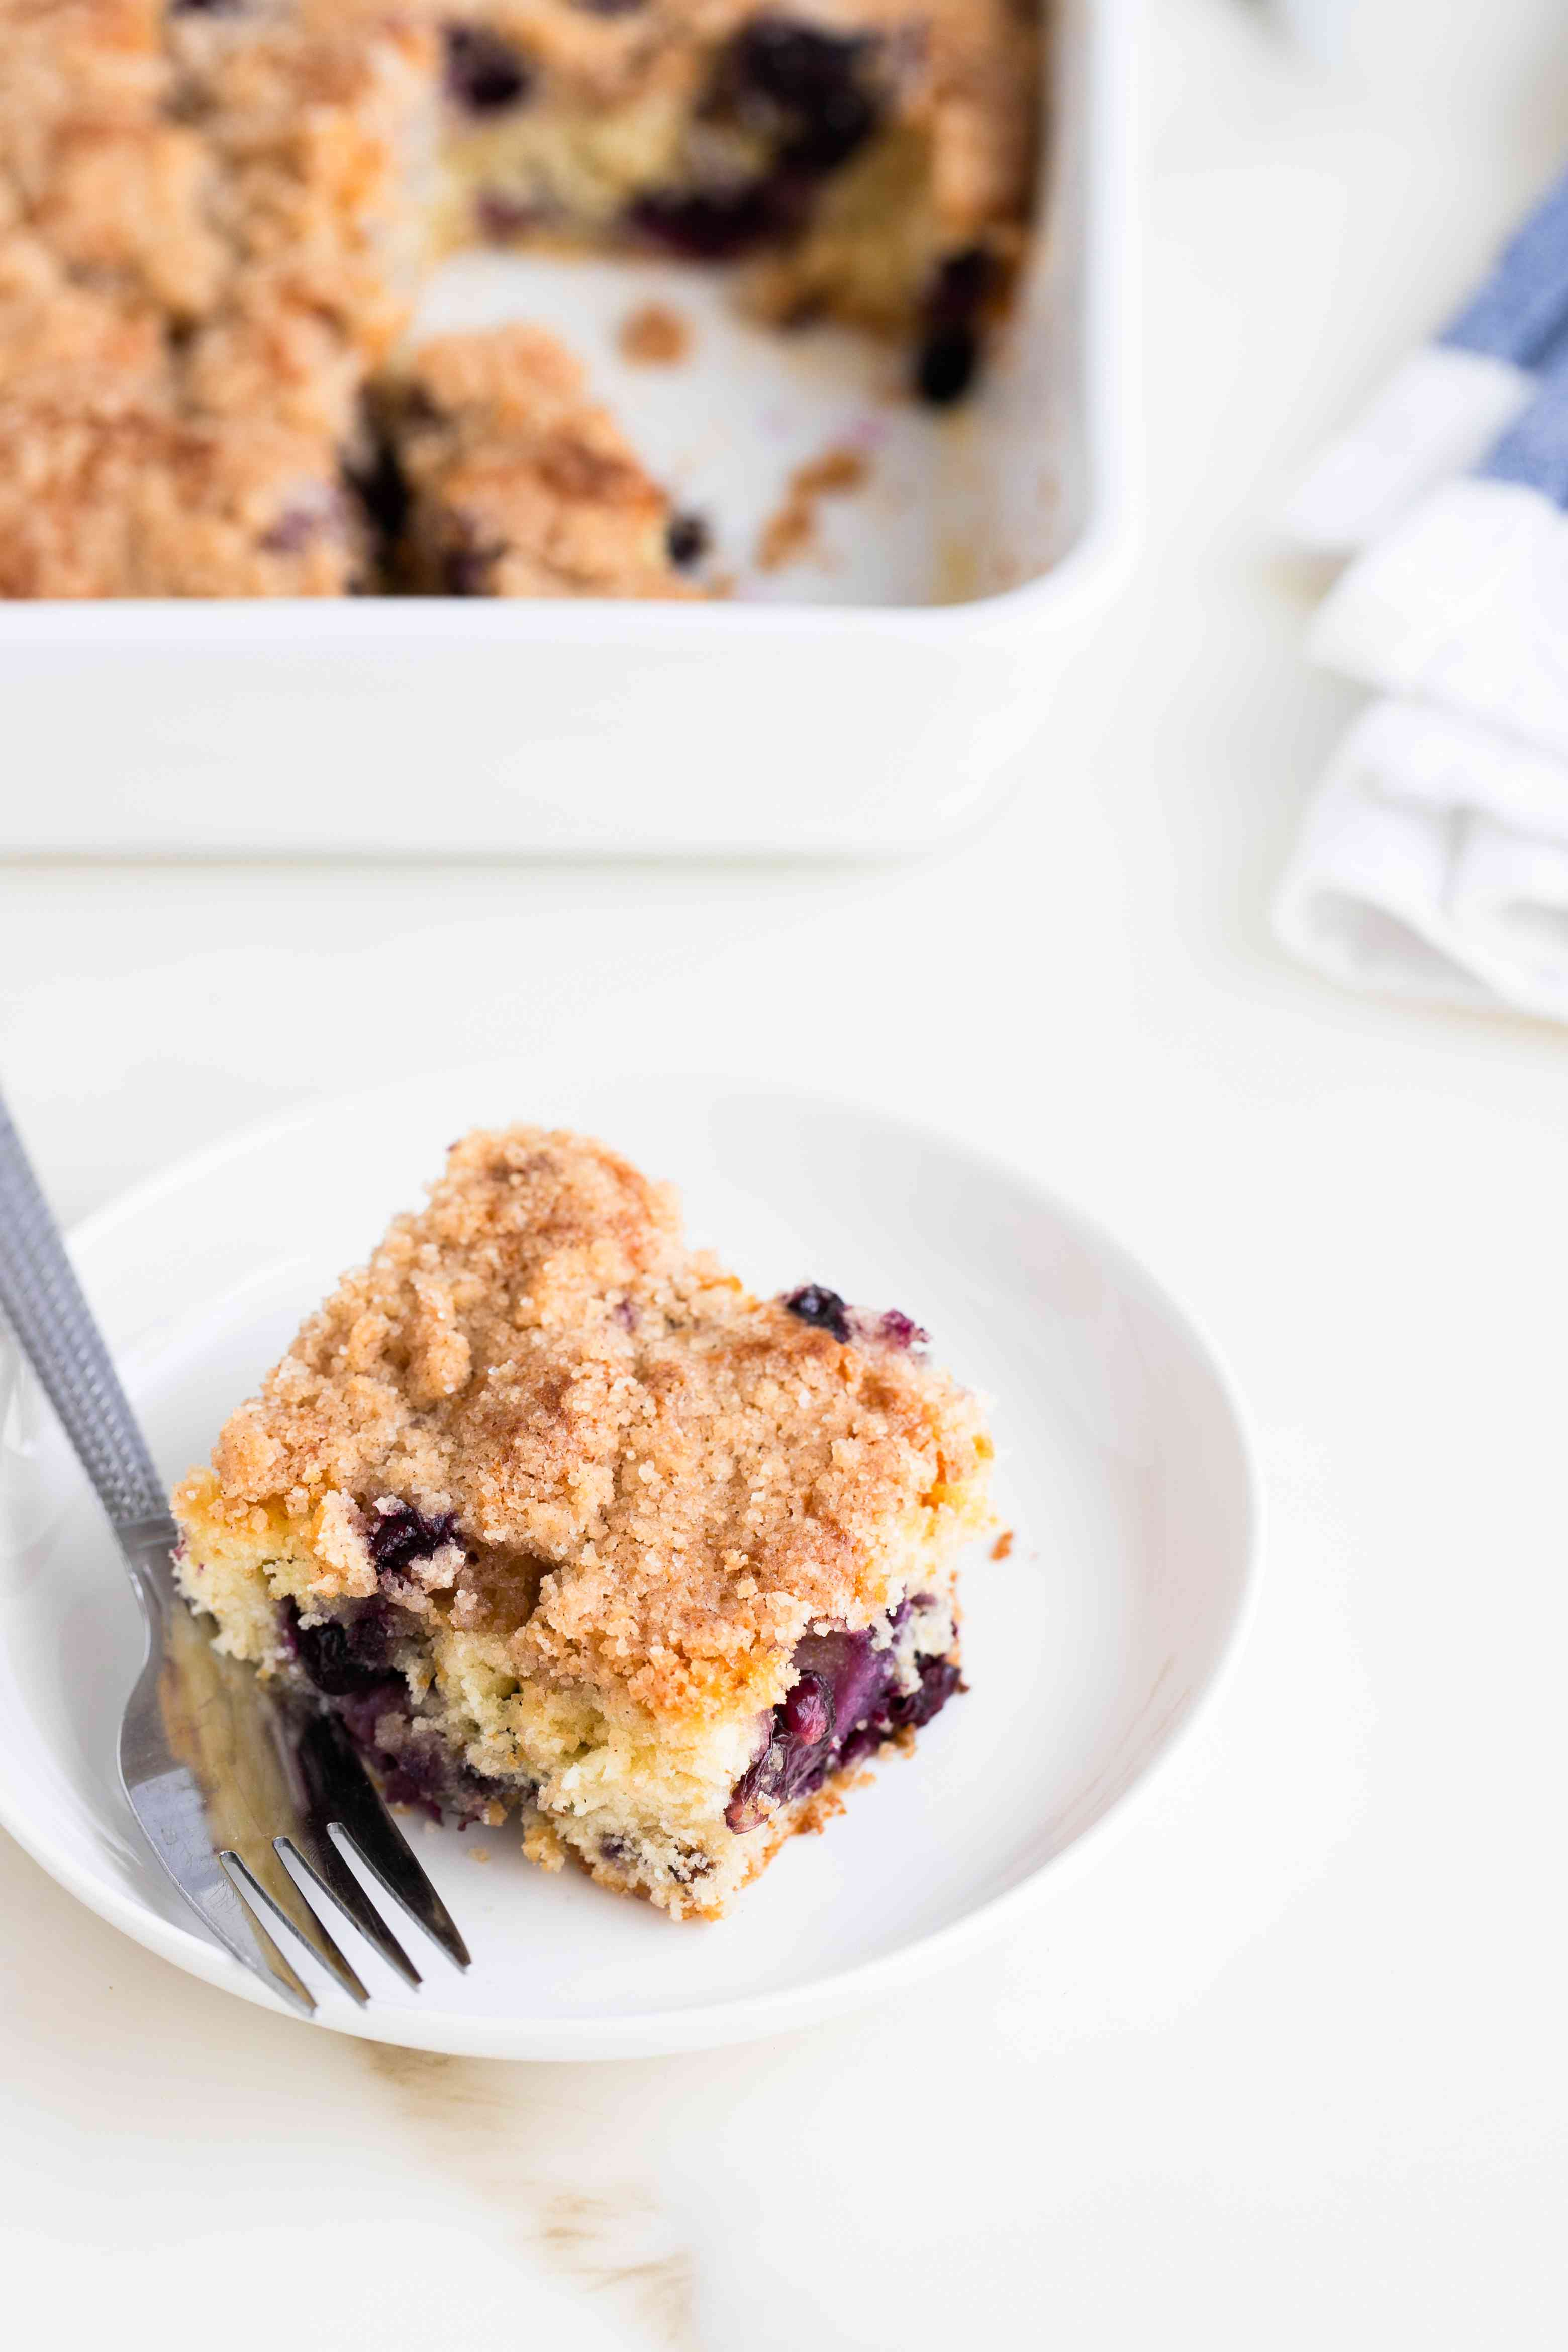 Blueberry Buckle Cake With Cinnamon Spiced Topping recipe